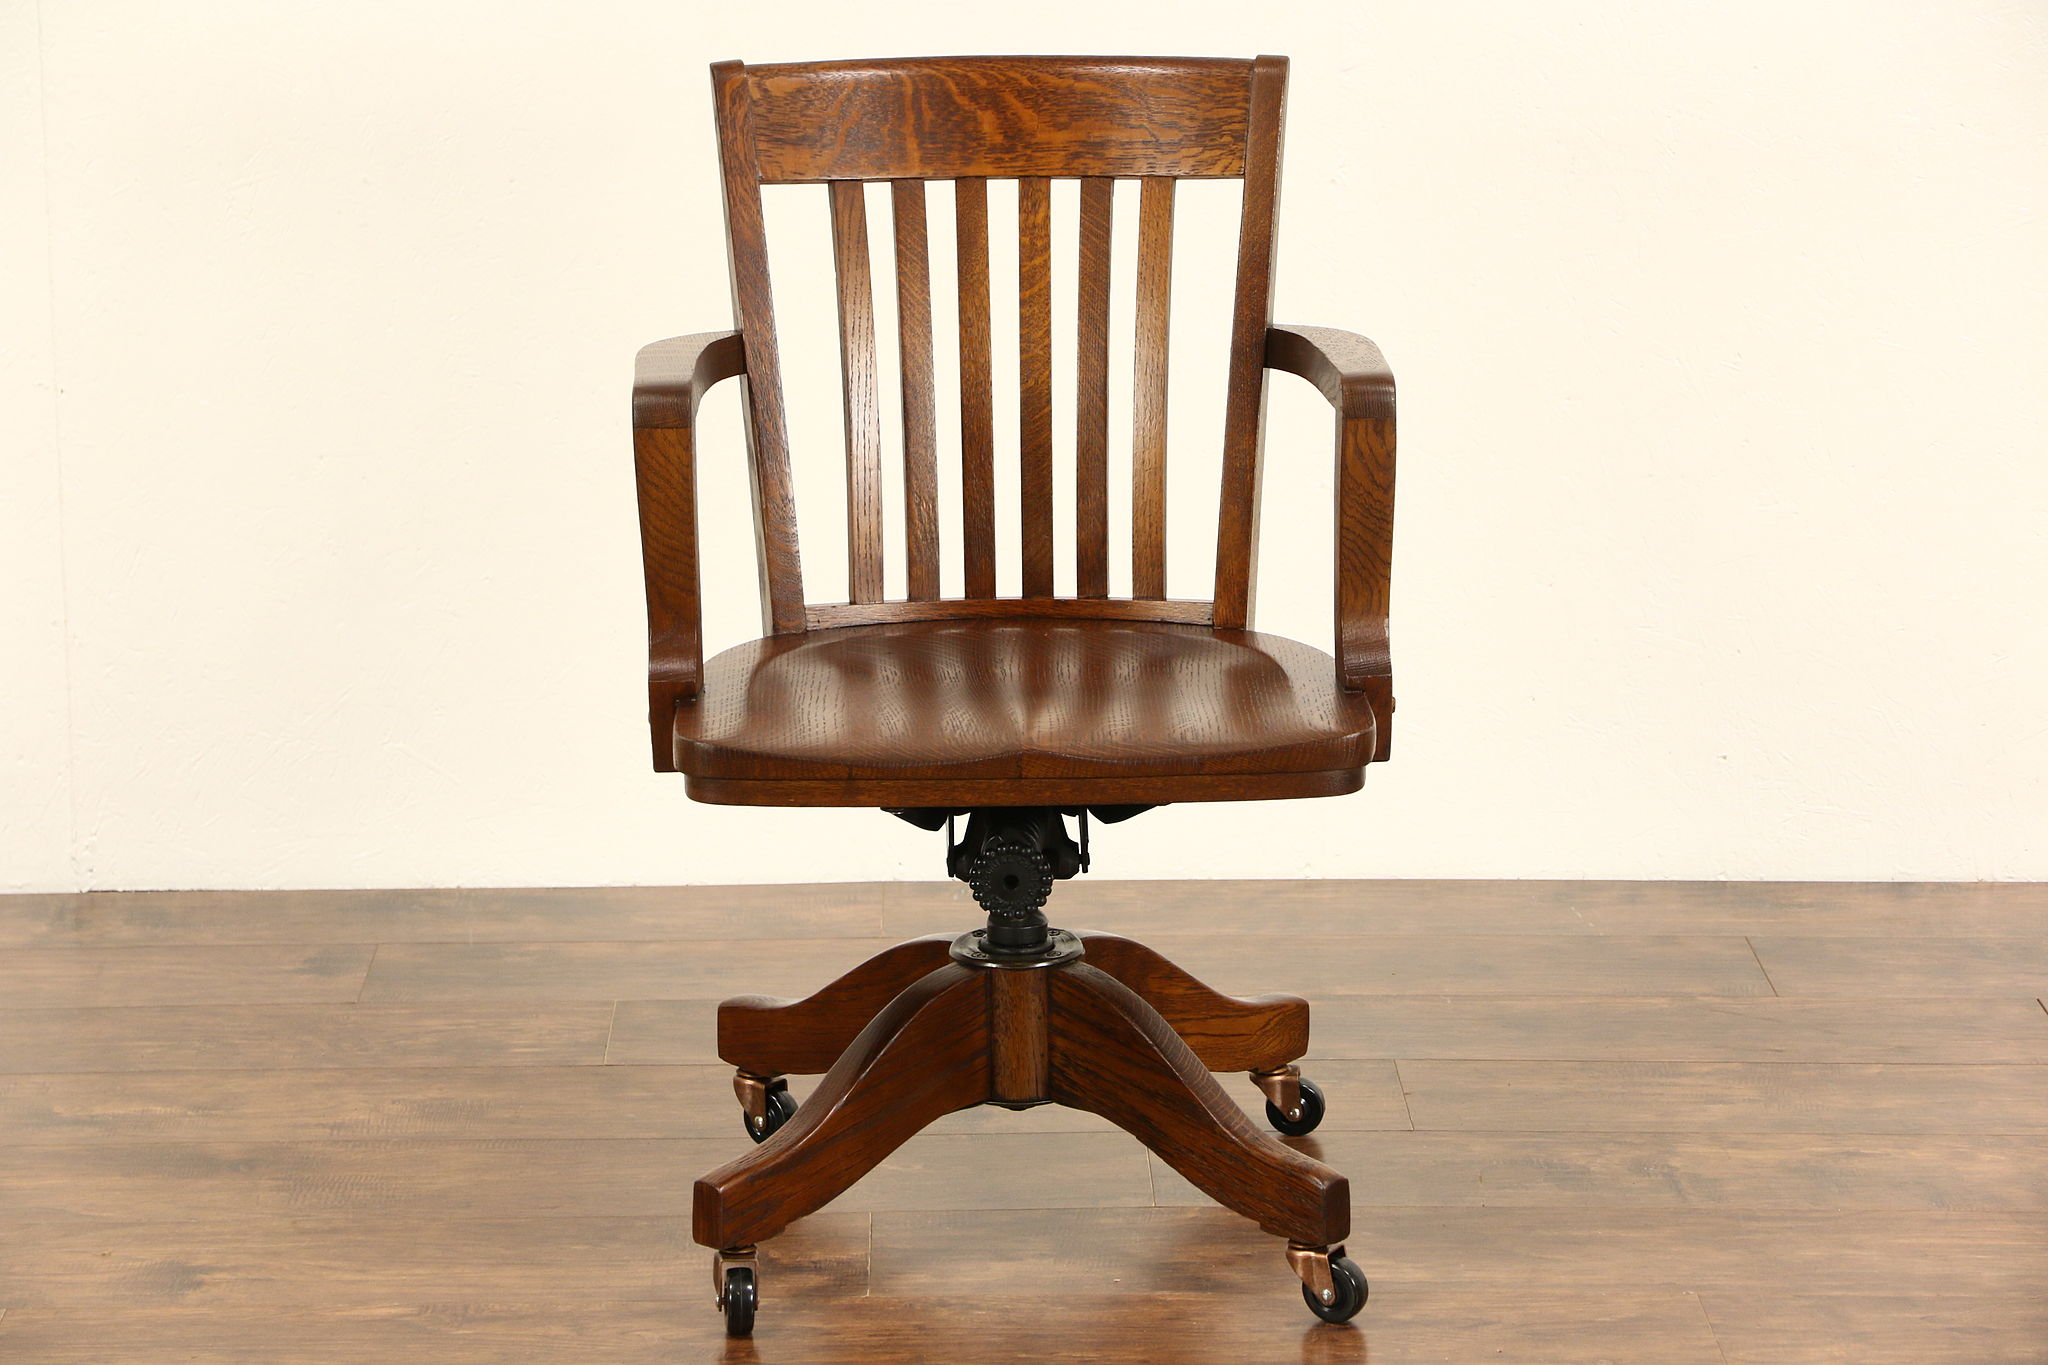 Sold Oak Swivel Adjustable 1910 Antique Desk Chair Signed Colonial Of Chicago Harp Gallery Antiques Furniture